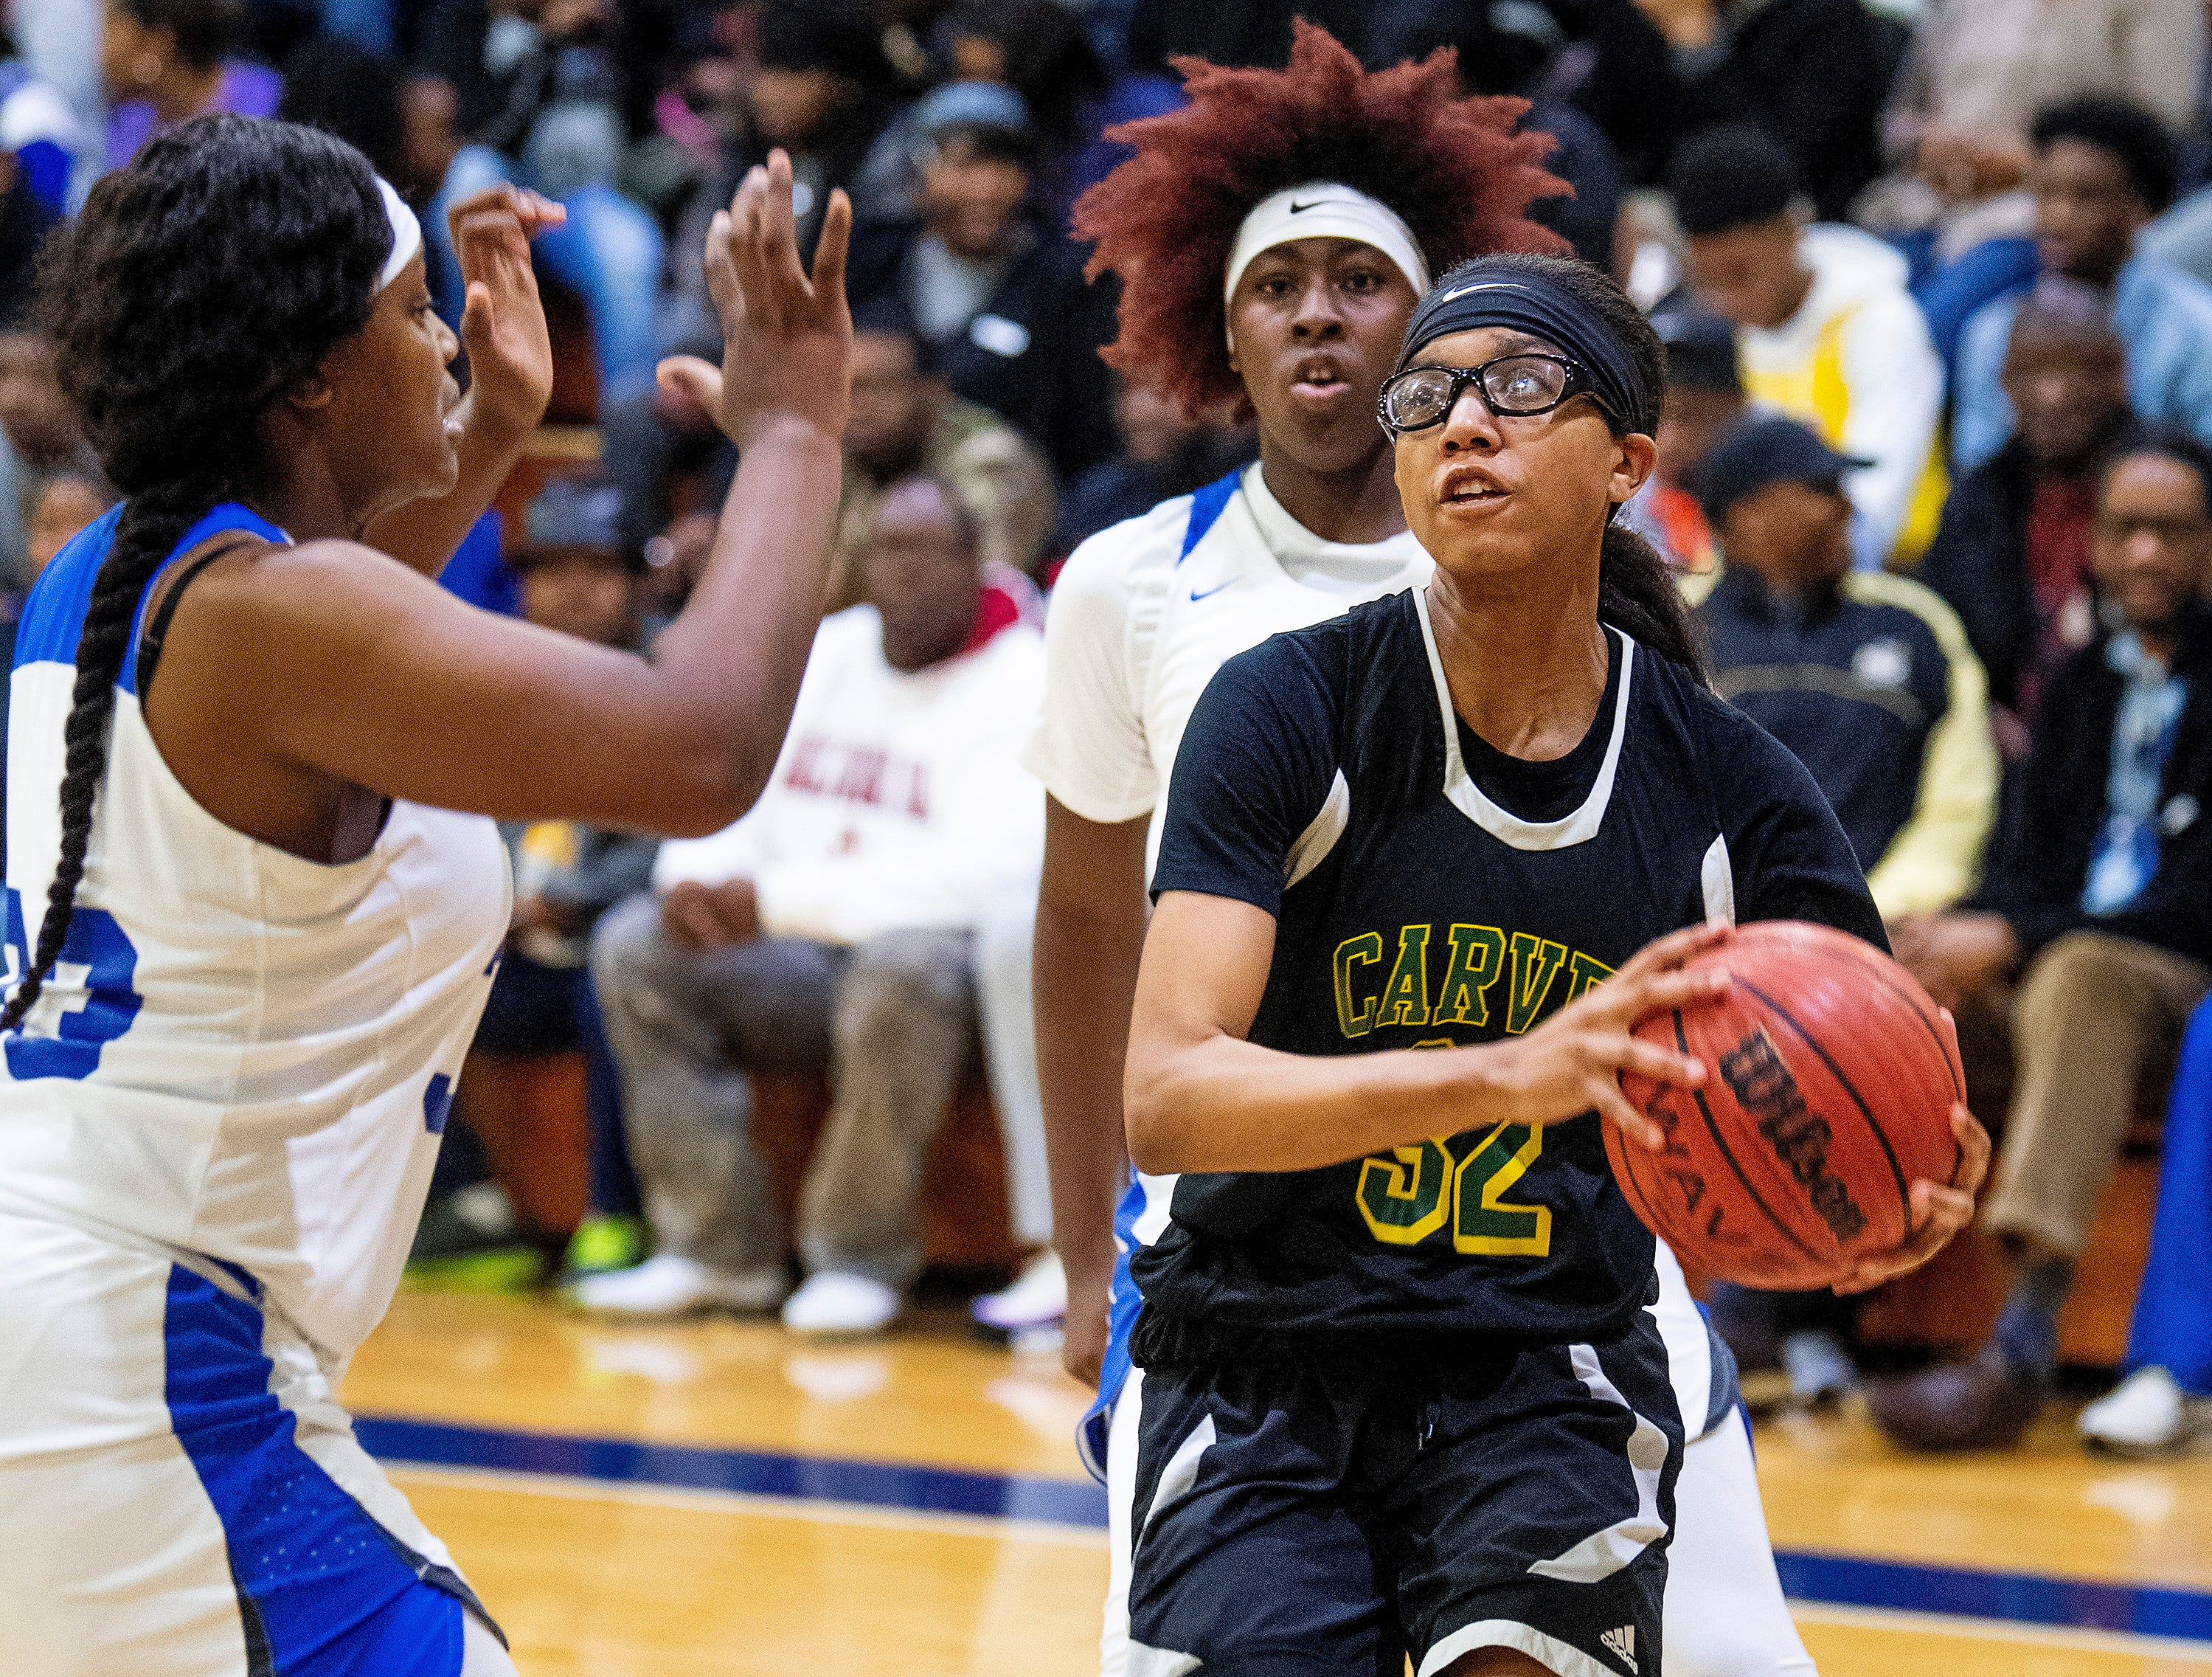 Carver's Jaquanna Spear (32) against Lanier at the Lanier campus in Montgomery, Ala., on Friday January 11, 2019.